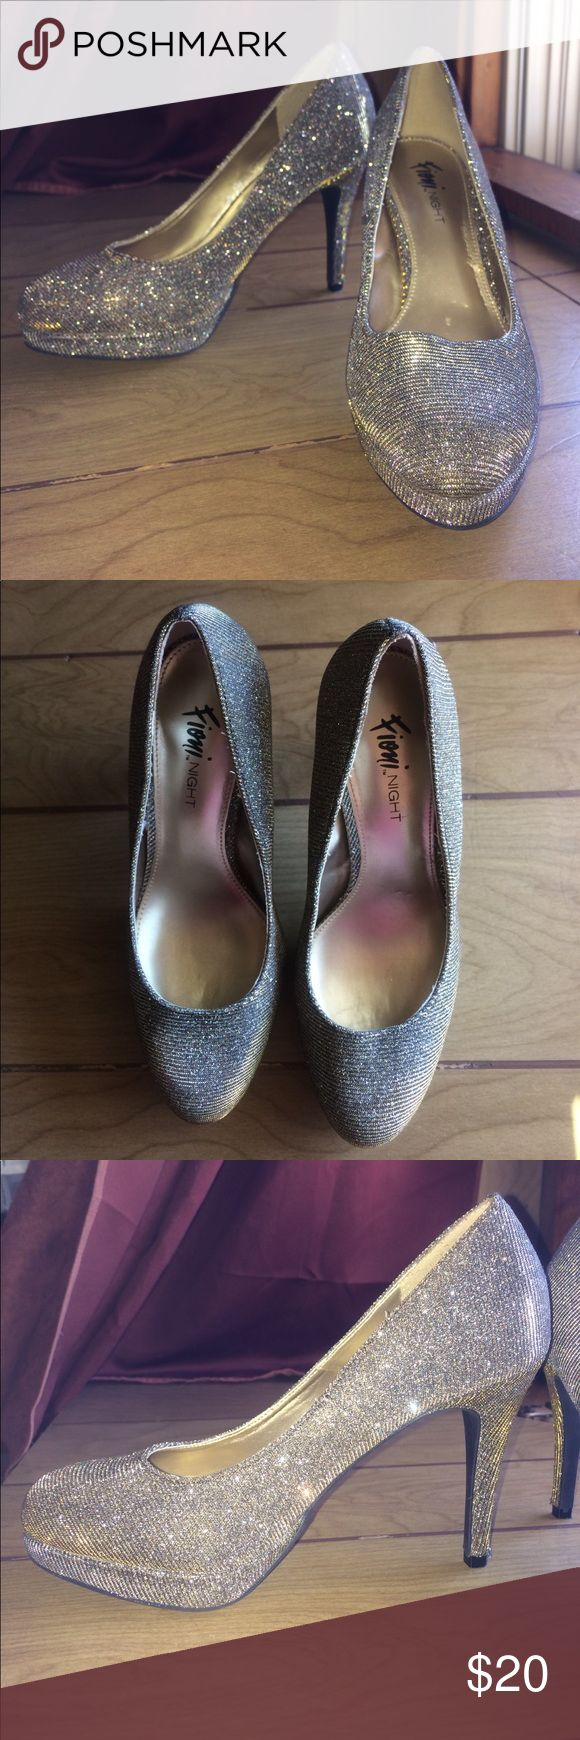 FIONI NIGHT Sparkly Heels Beautiful silver and gold sparkle heels. Only worn once to a prom. Only sign of wear is in the material just above the tip of the heel (shown in pics). FIONI Clothing Shoes Heels